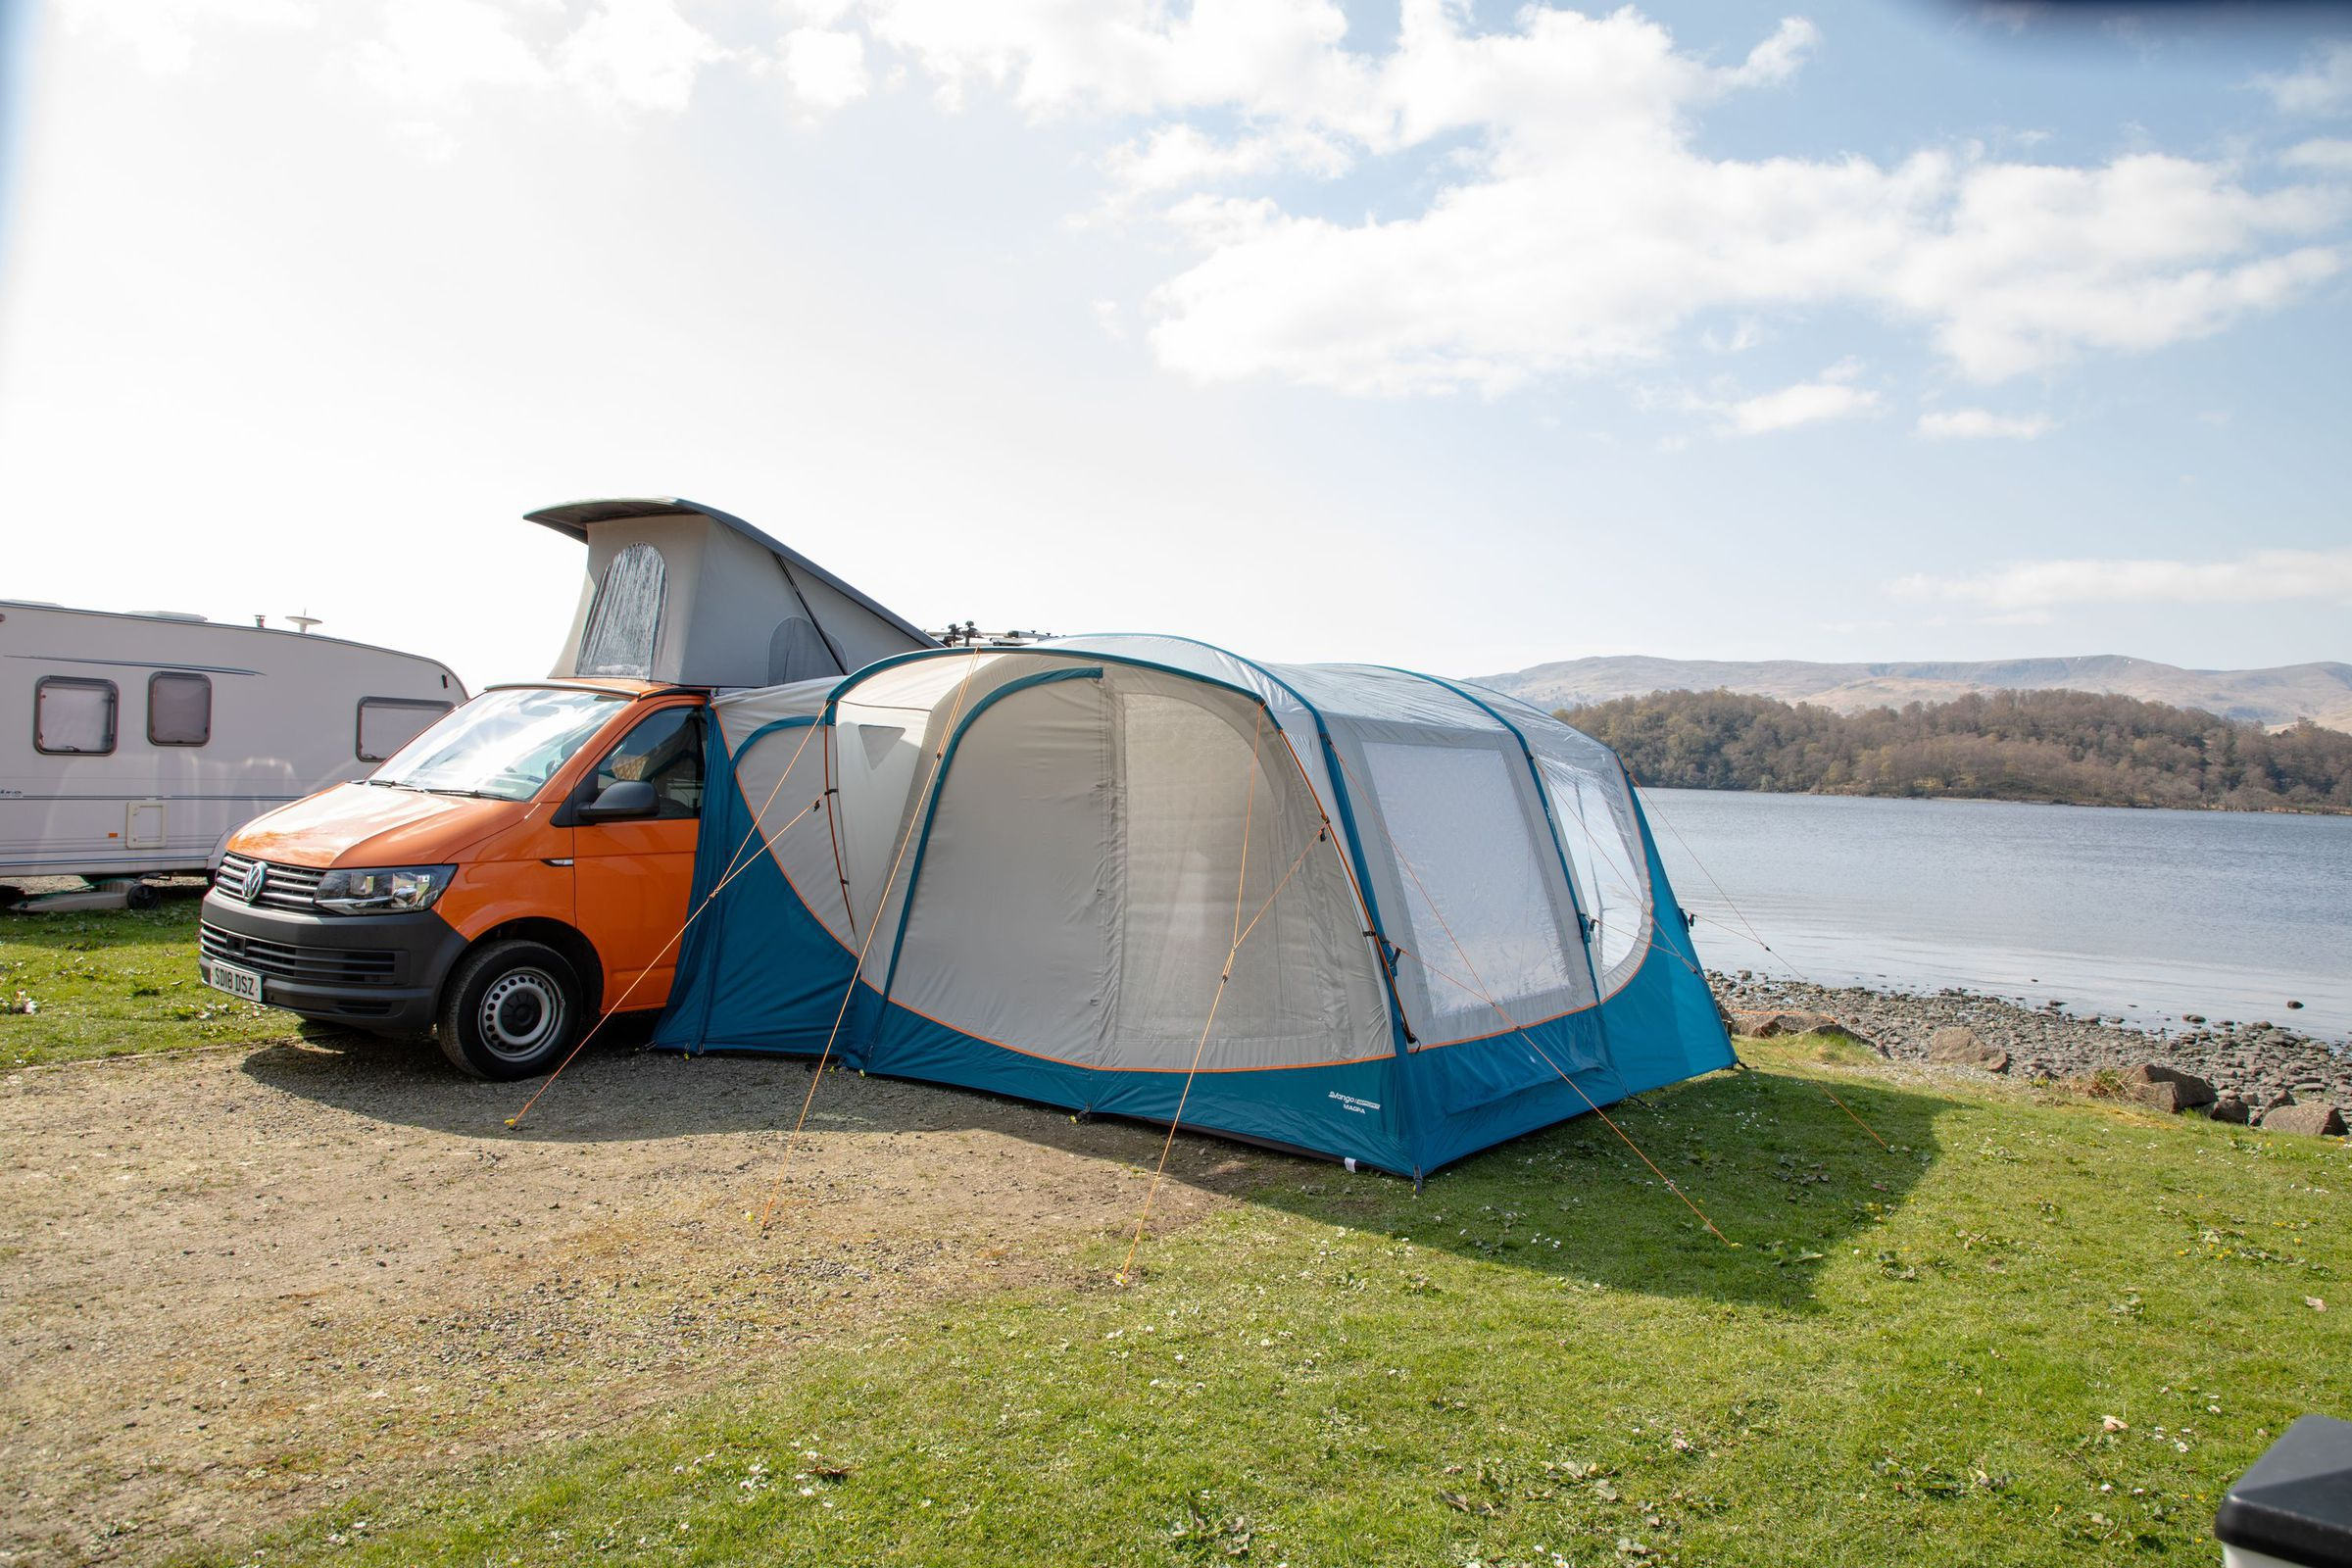 Vango Magra Vw Low Driveaway Awning Norwich Camping1